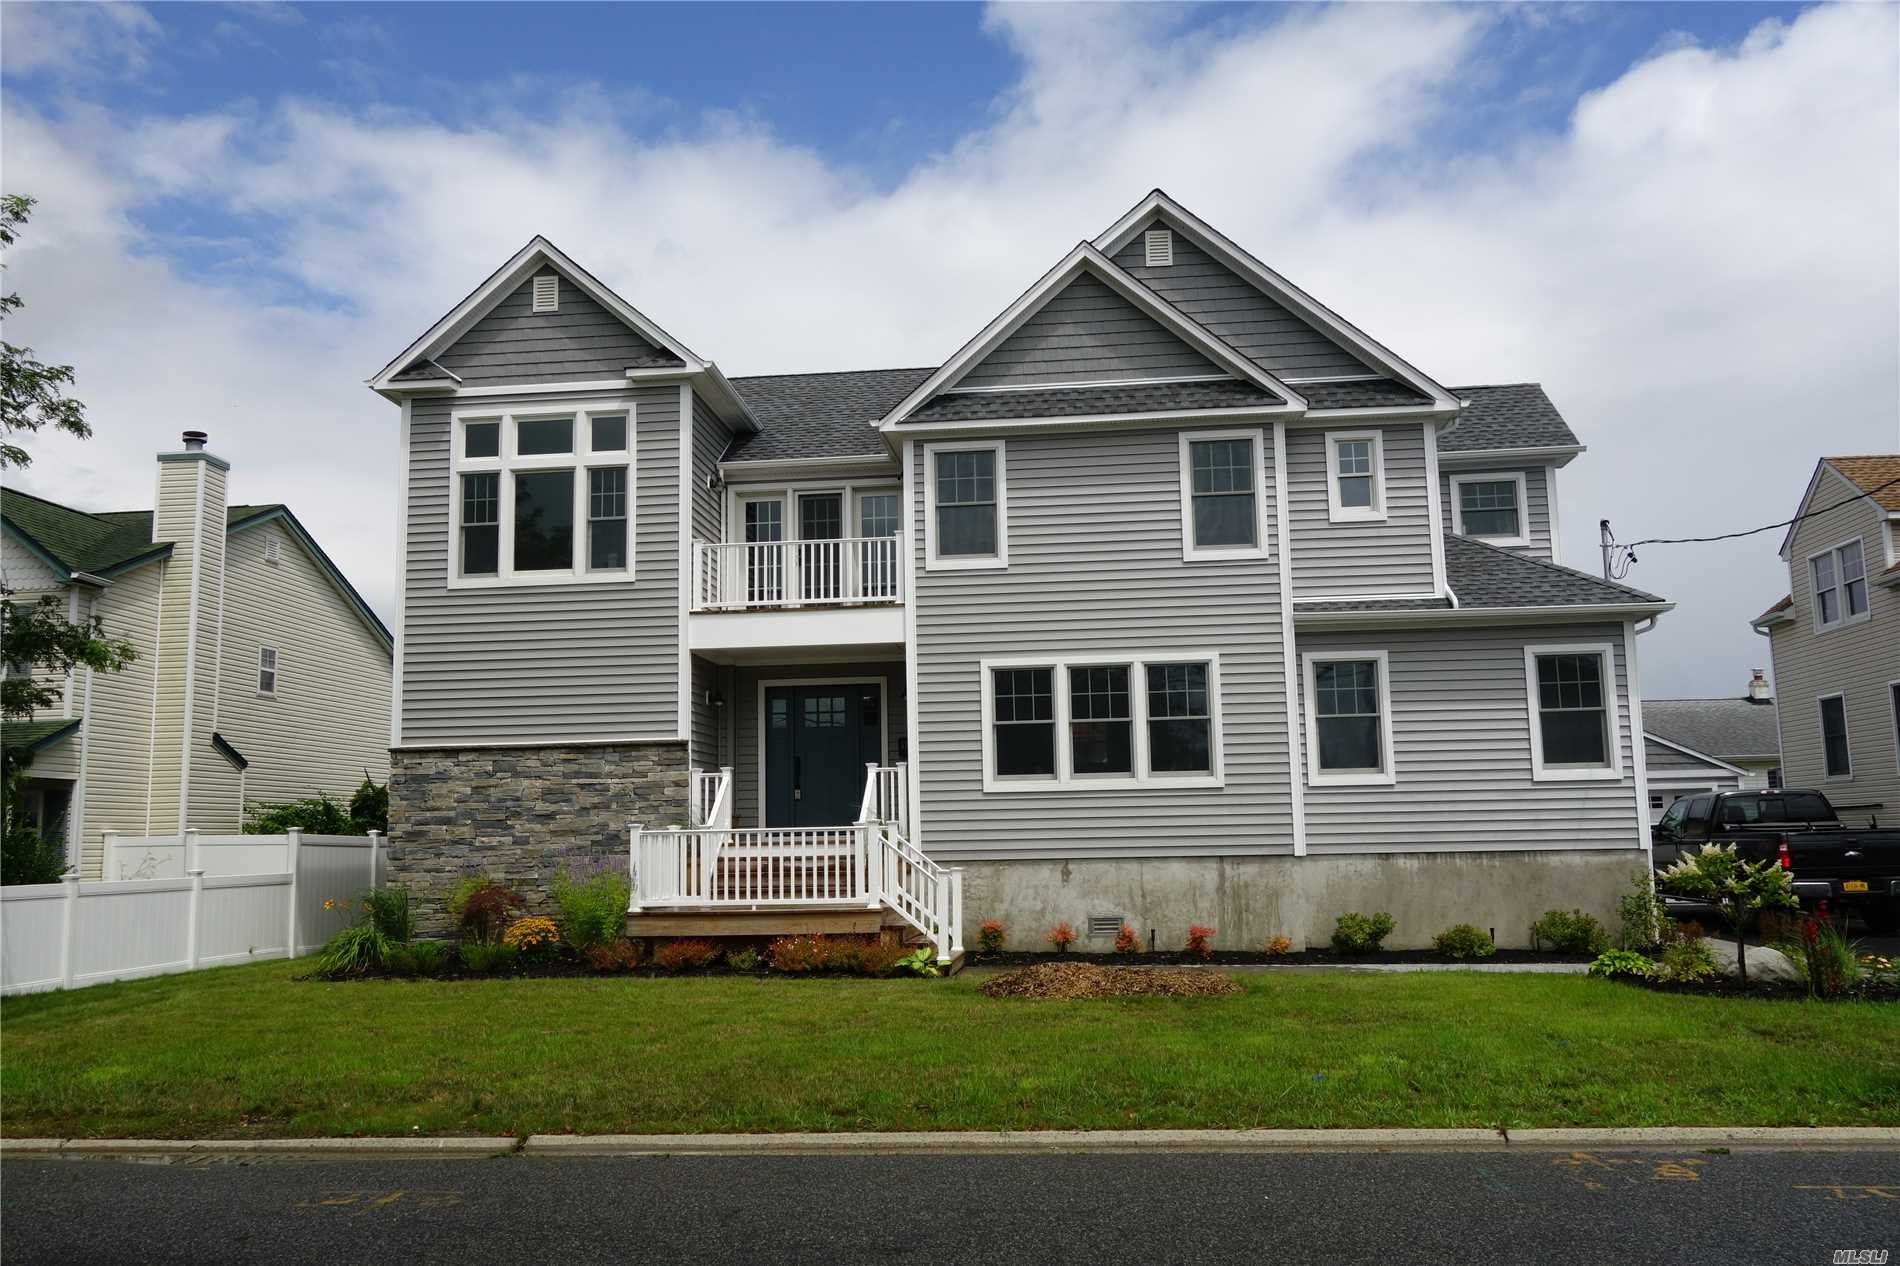 Beautiful New Construction Home Built With Open Floor Plan. Perfect For Entertaining. Be The First To Live In This Well Appointed House That Has Every Detail Completed. Totally Fema Compliant. New Construction Warranty.